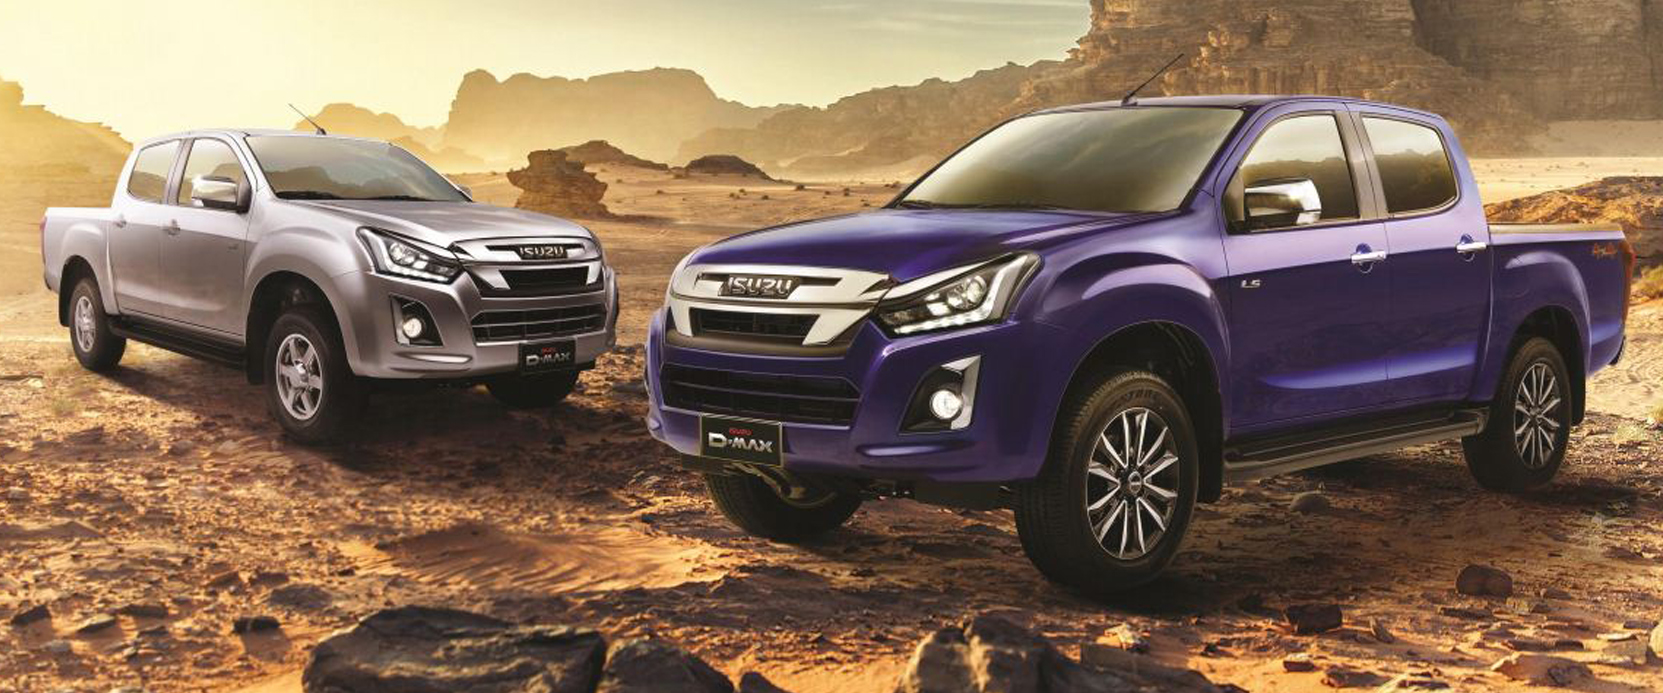 Isuzu d-max new model